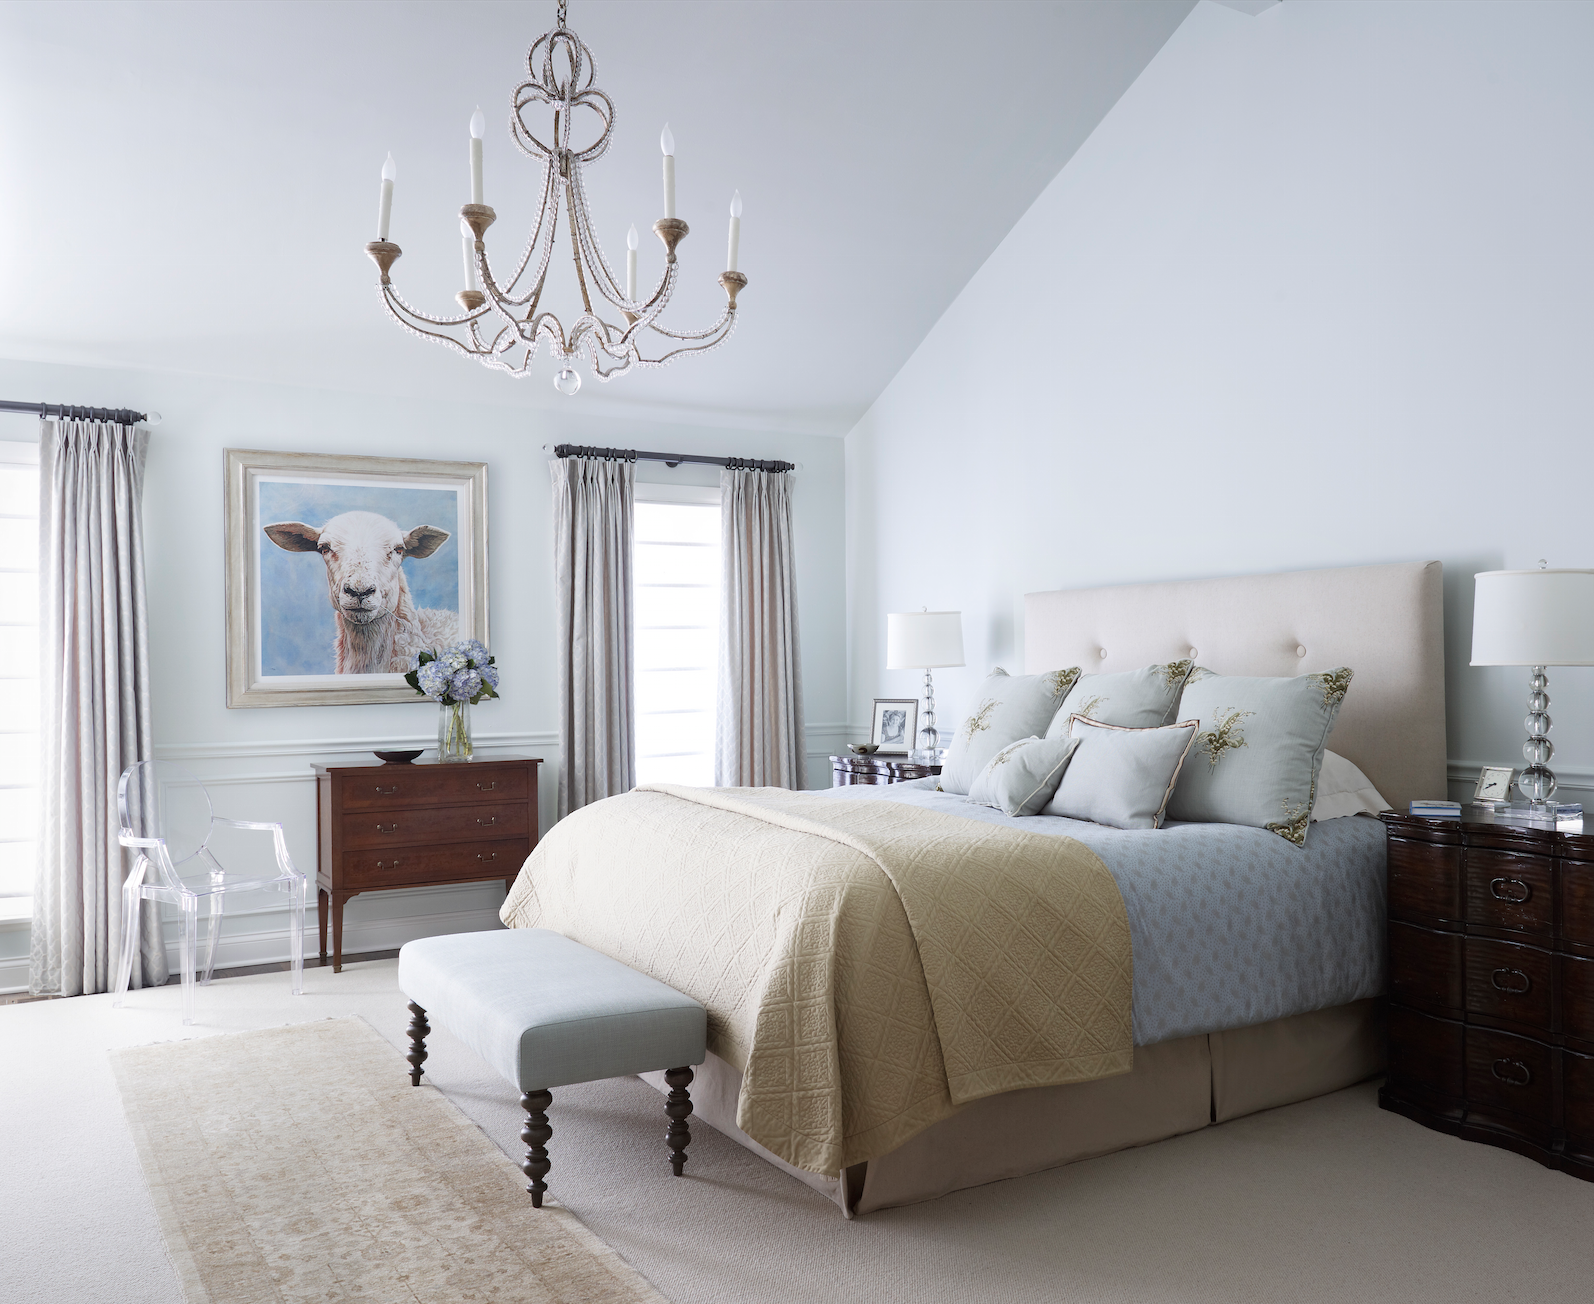 City townhome master bedroom by Kim Scodro Interiors